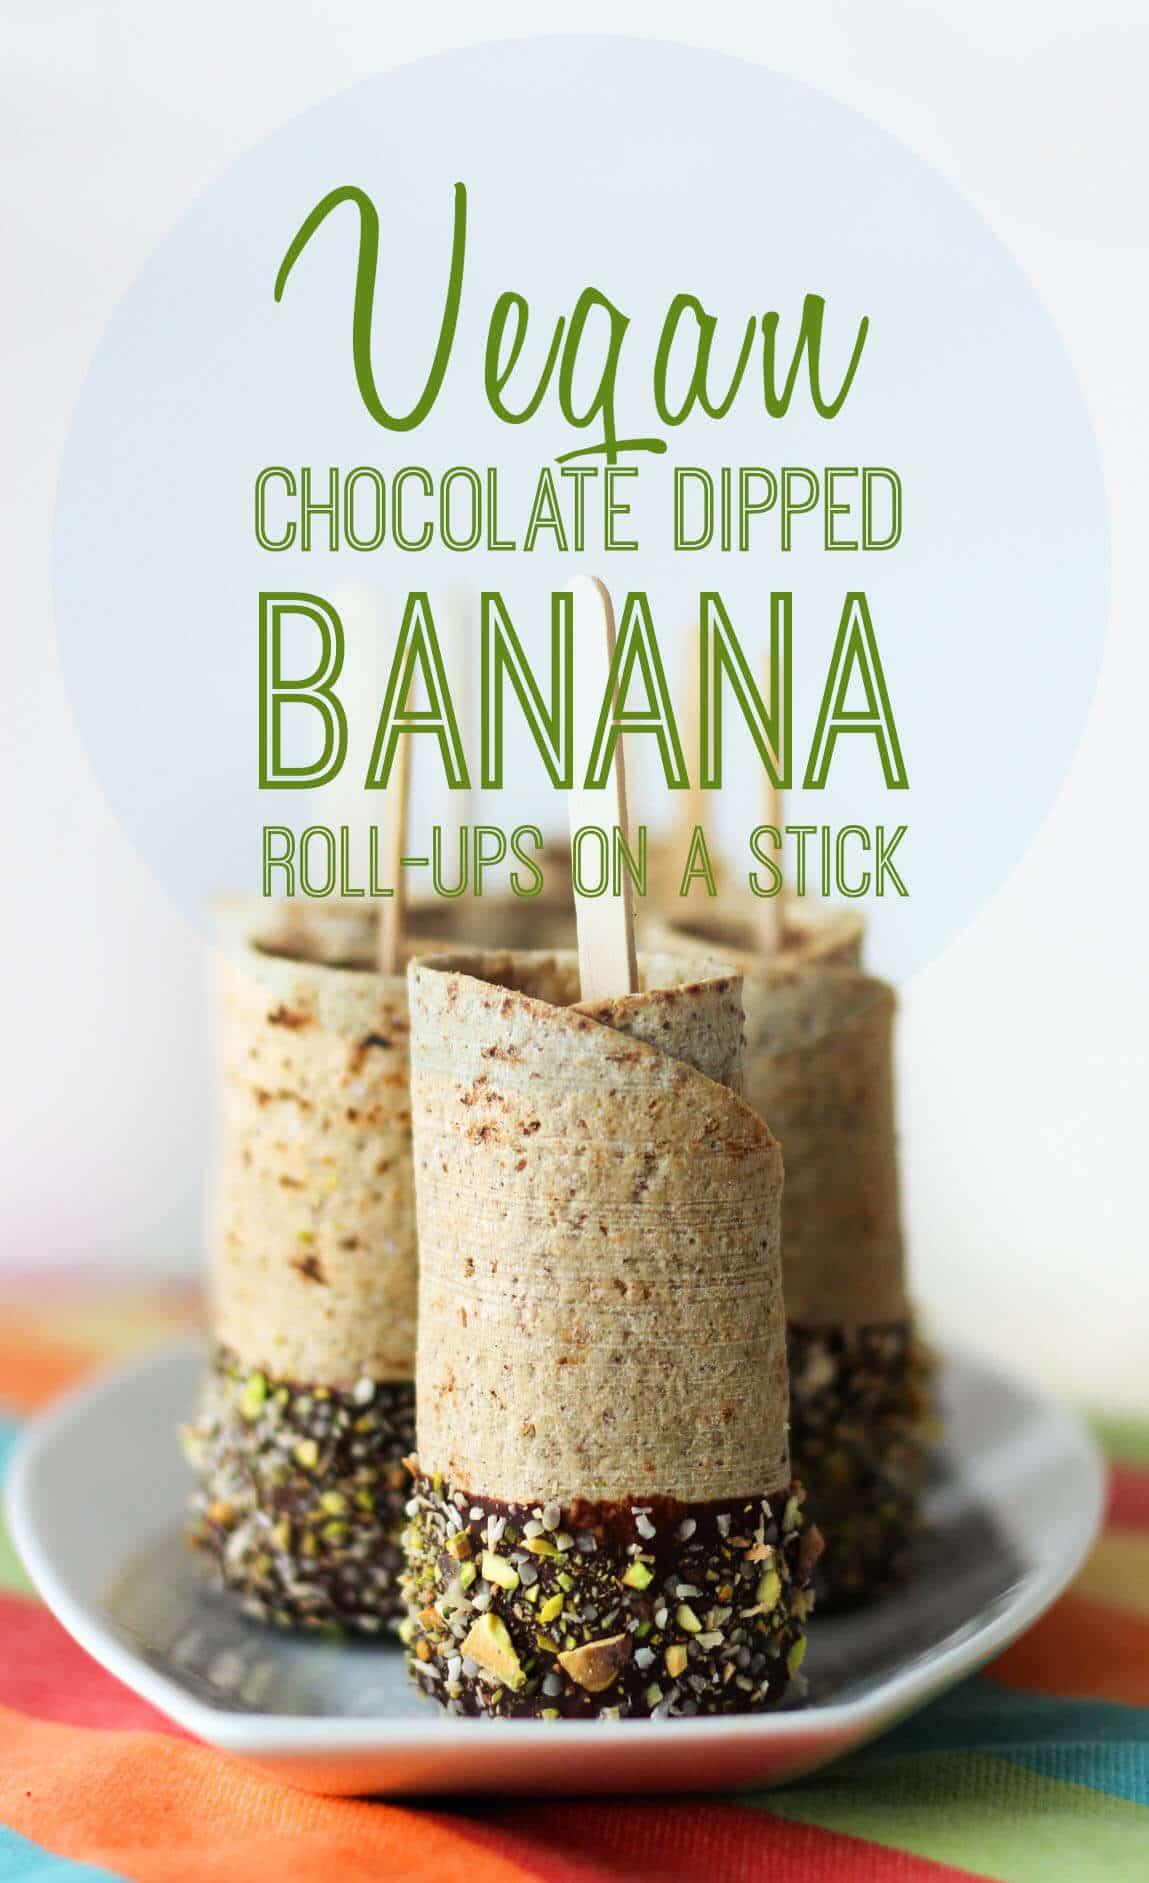 Pinterest image of a plate of multiple vegan chocolate dipped banana roll ups on a stick.